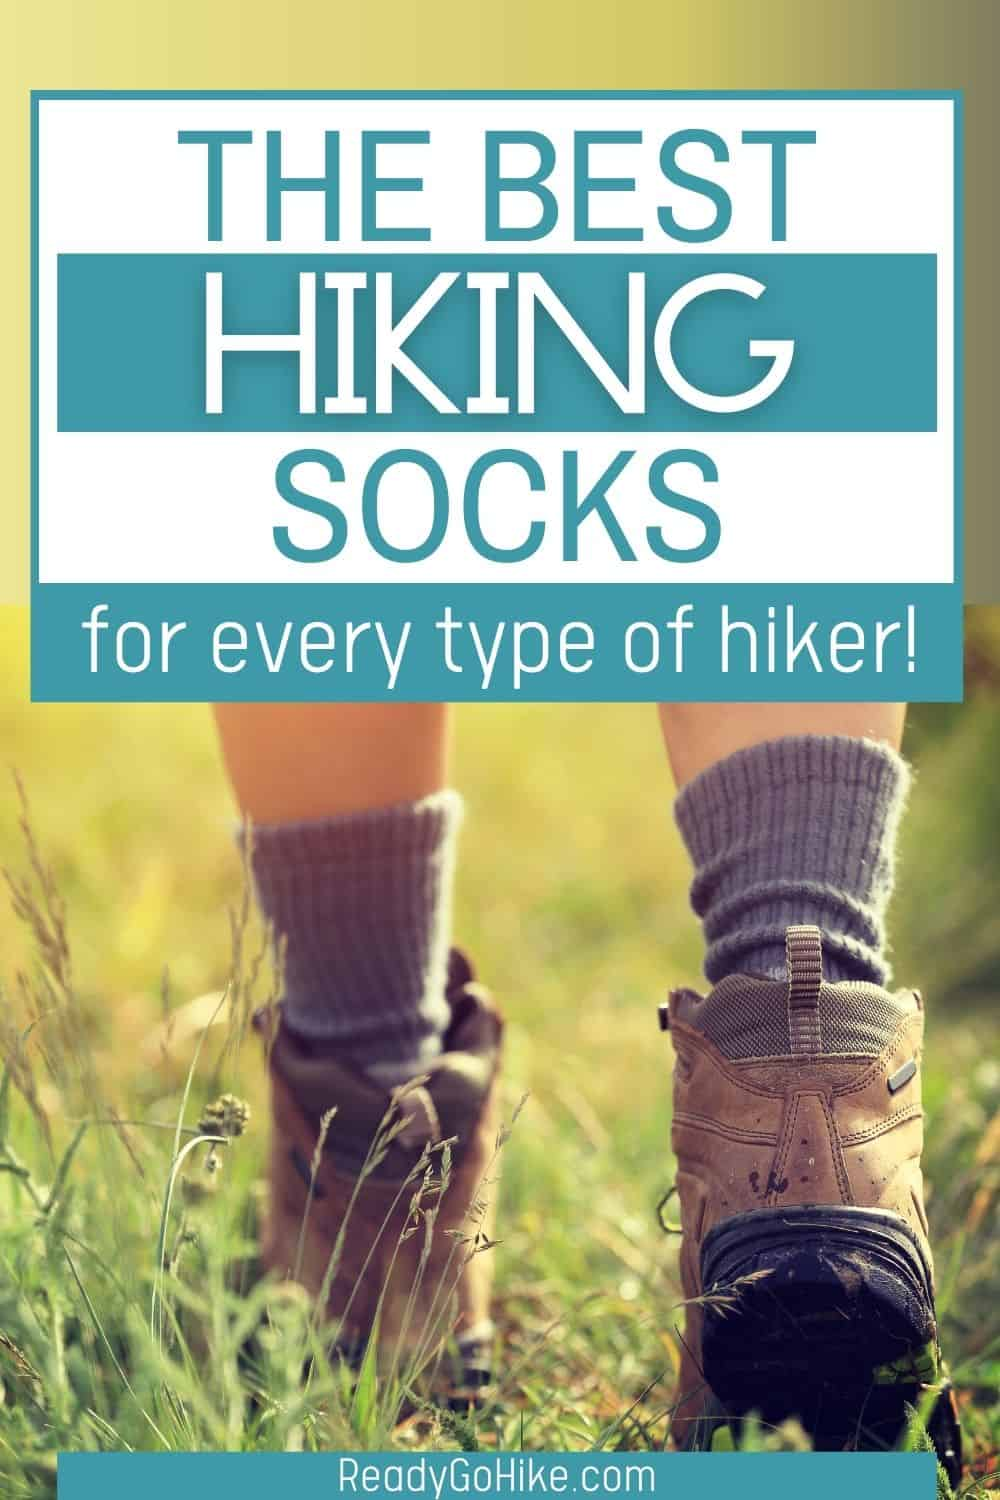 Woman hiking through field with text overlay The Best Hiking Socks for Every Type of Hiker